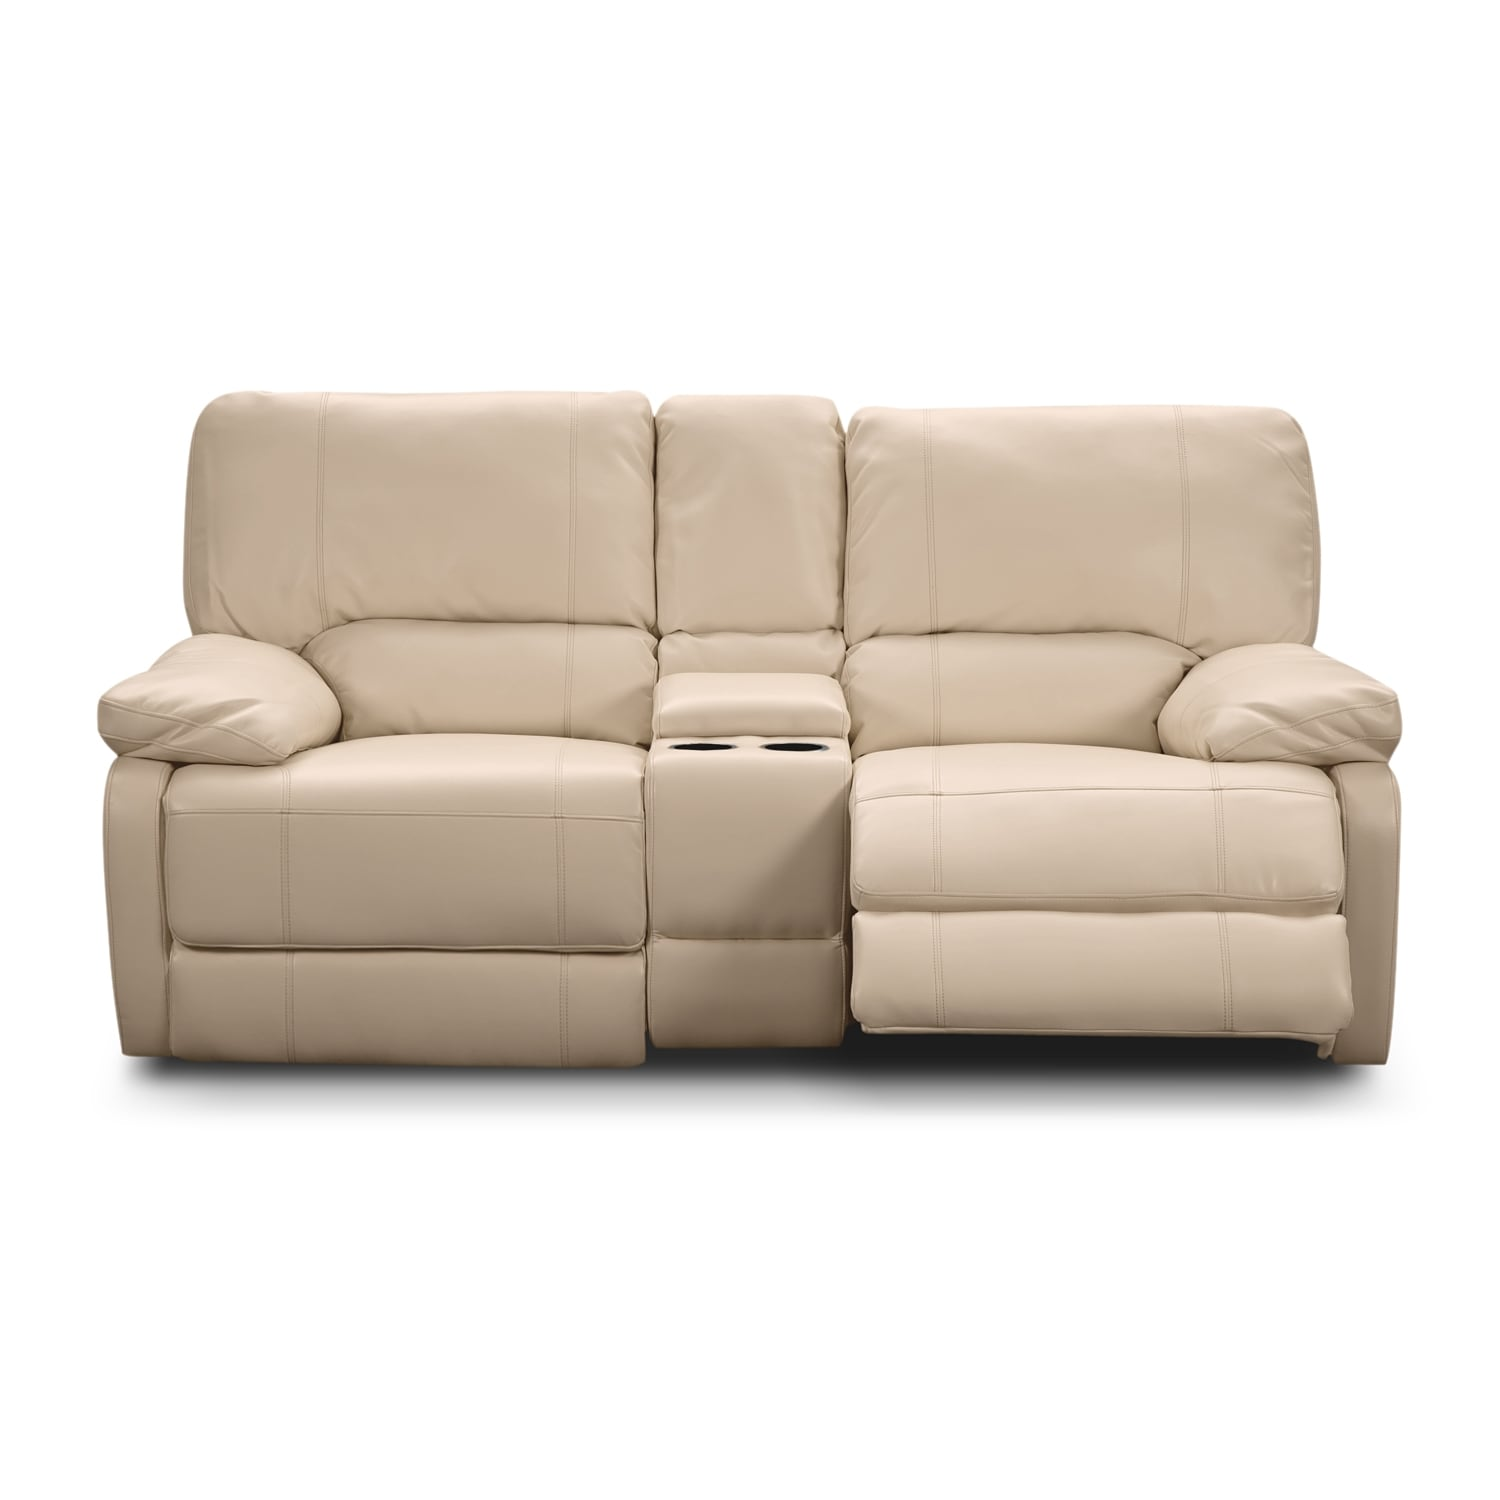 Coronado Leather Power Reclining Loveseat Value City